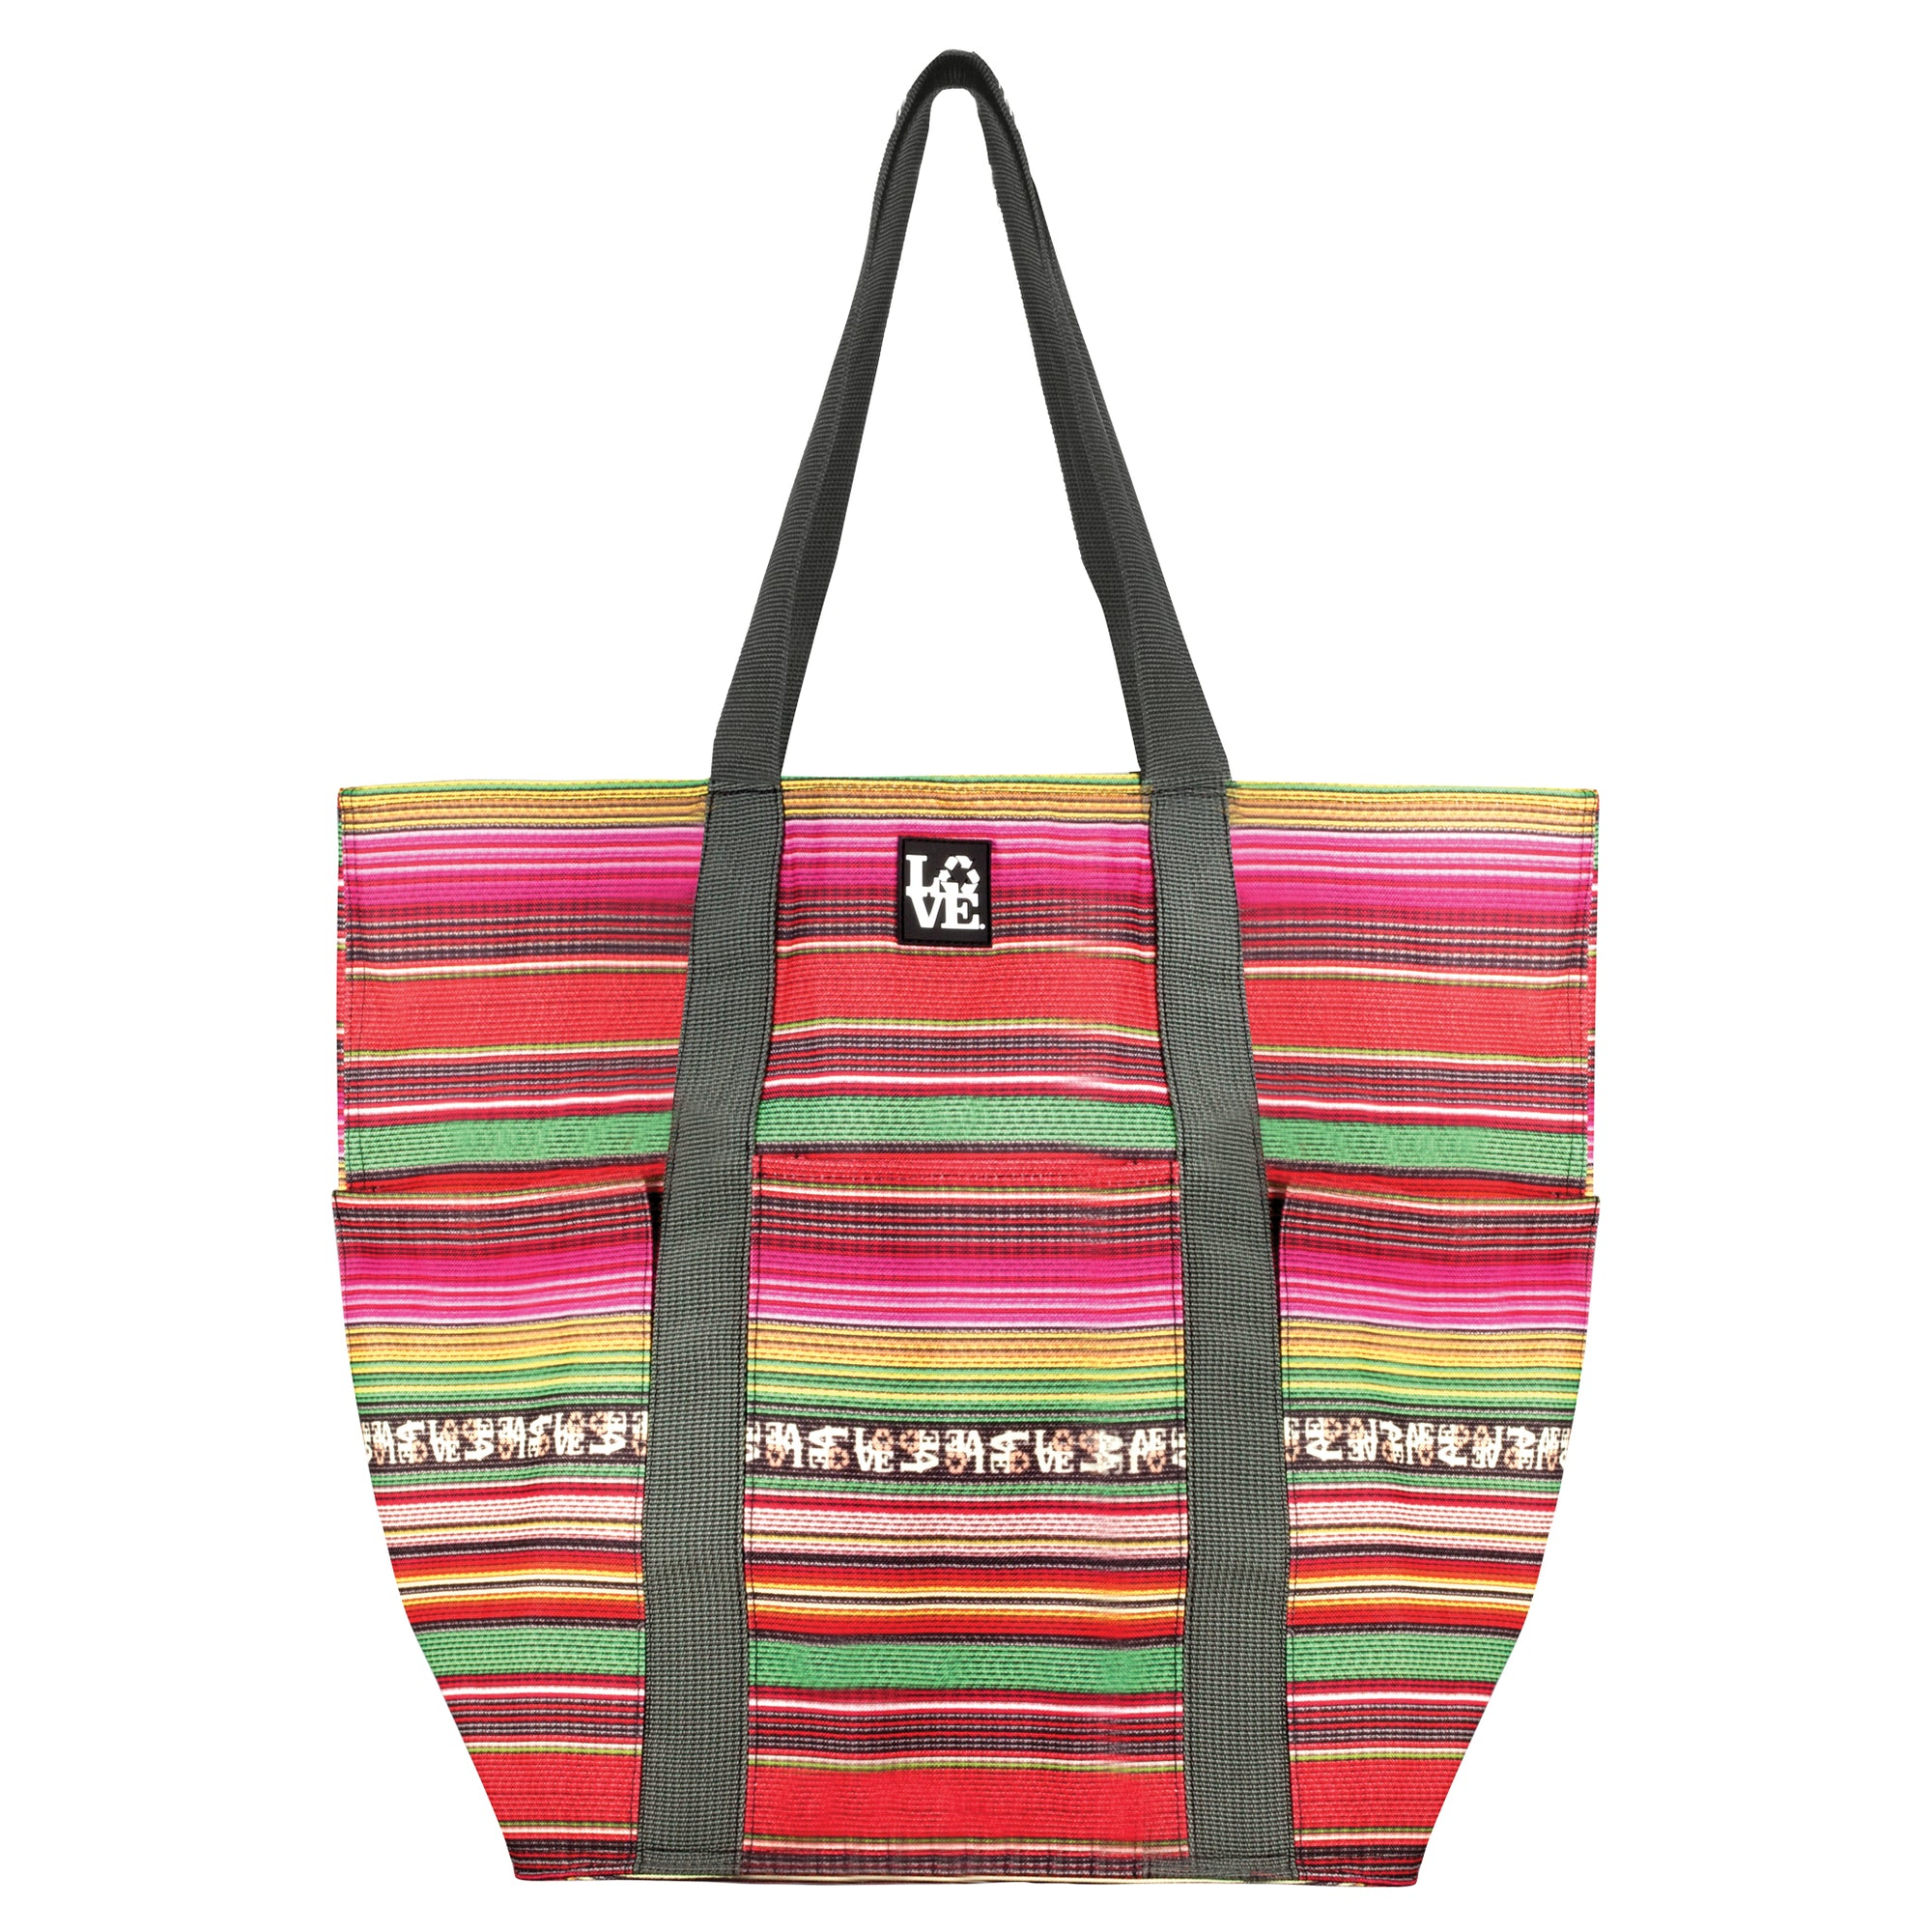 TRIO TOTE - LOVE BLANKET